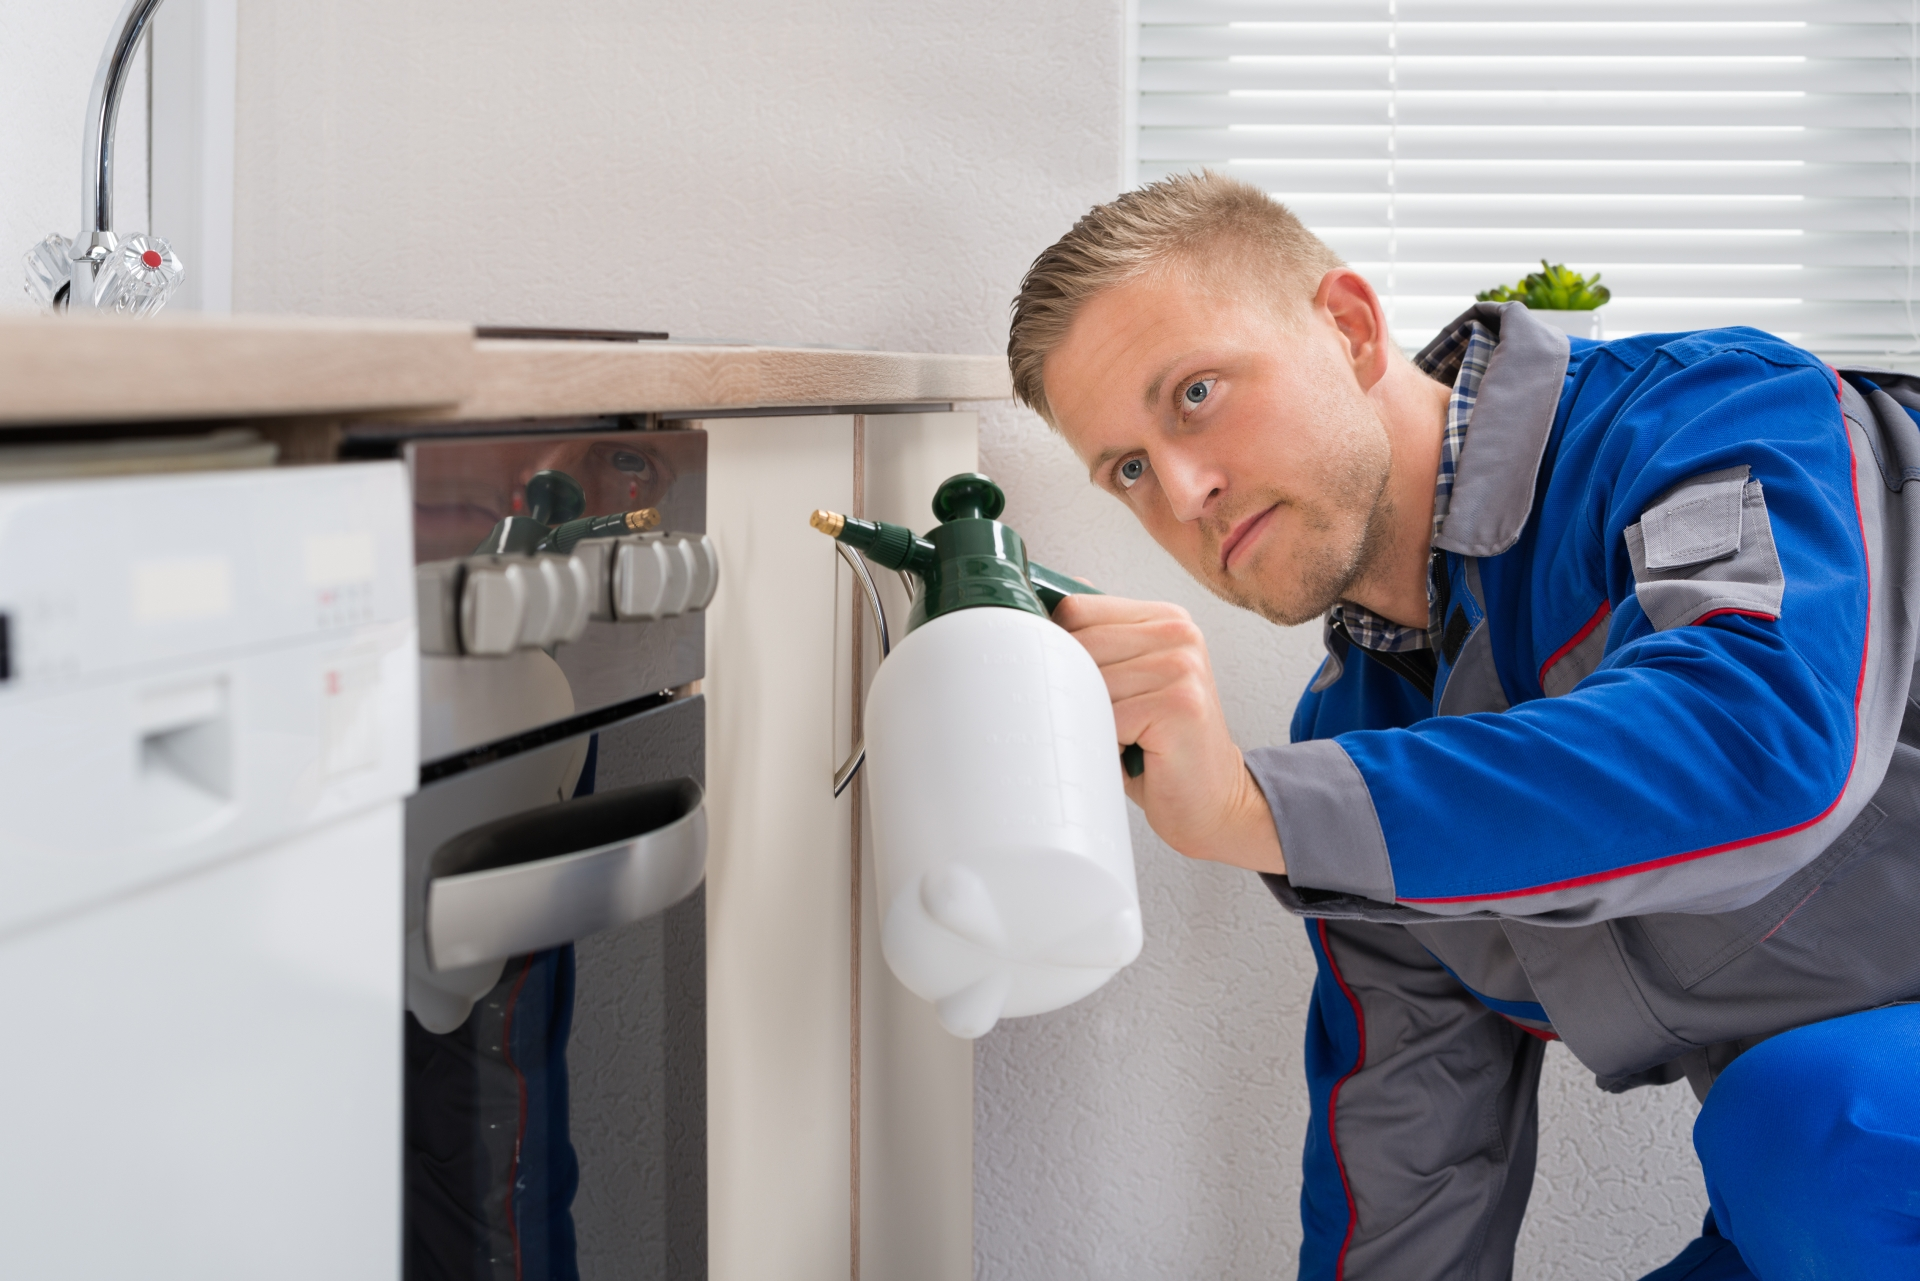 Pest Inspection, Pest Control in West Byfleet, Byfleet, KT14. Call Now 020 8166 9746